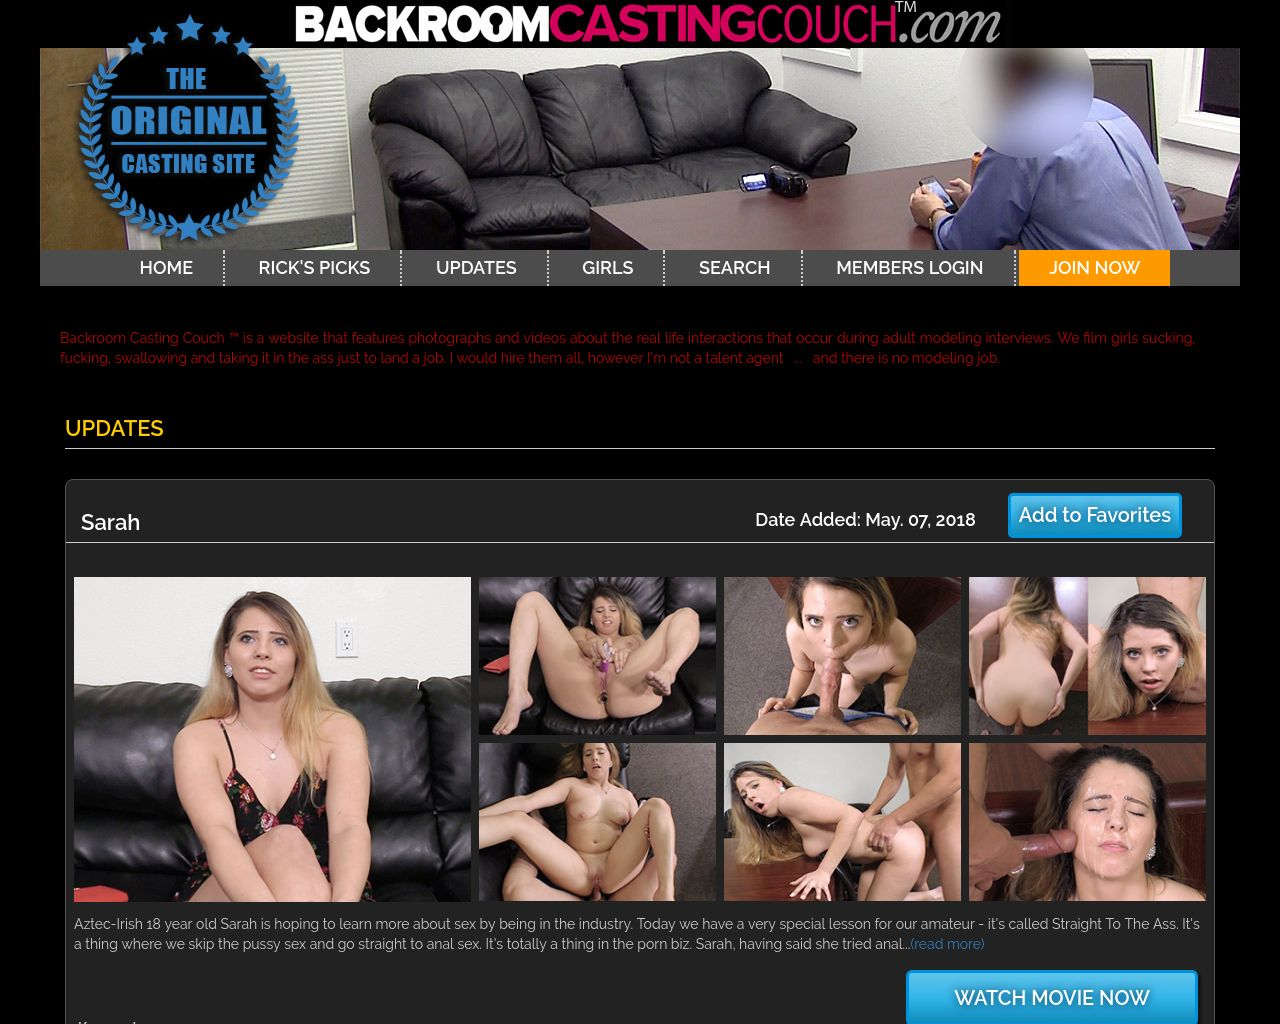 preview image password  for backroomcastingcouch.com